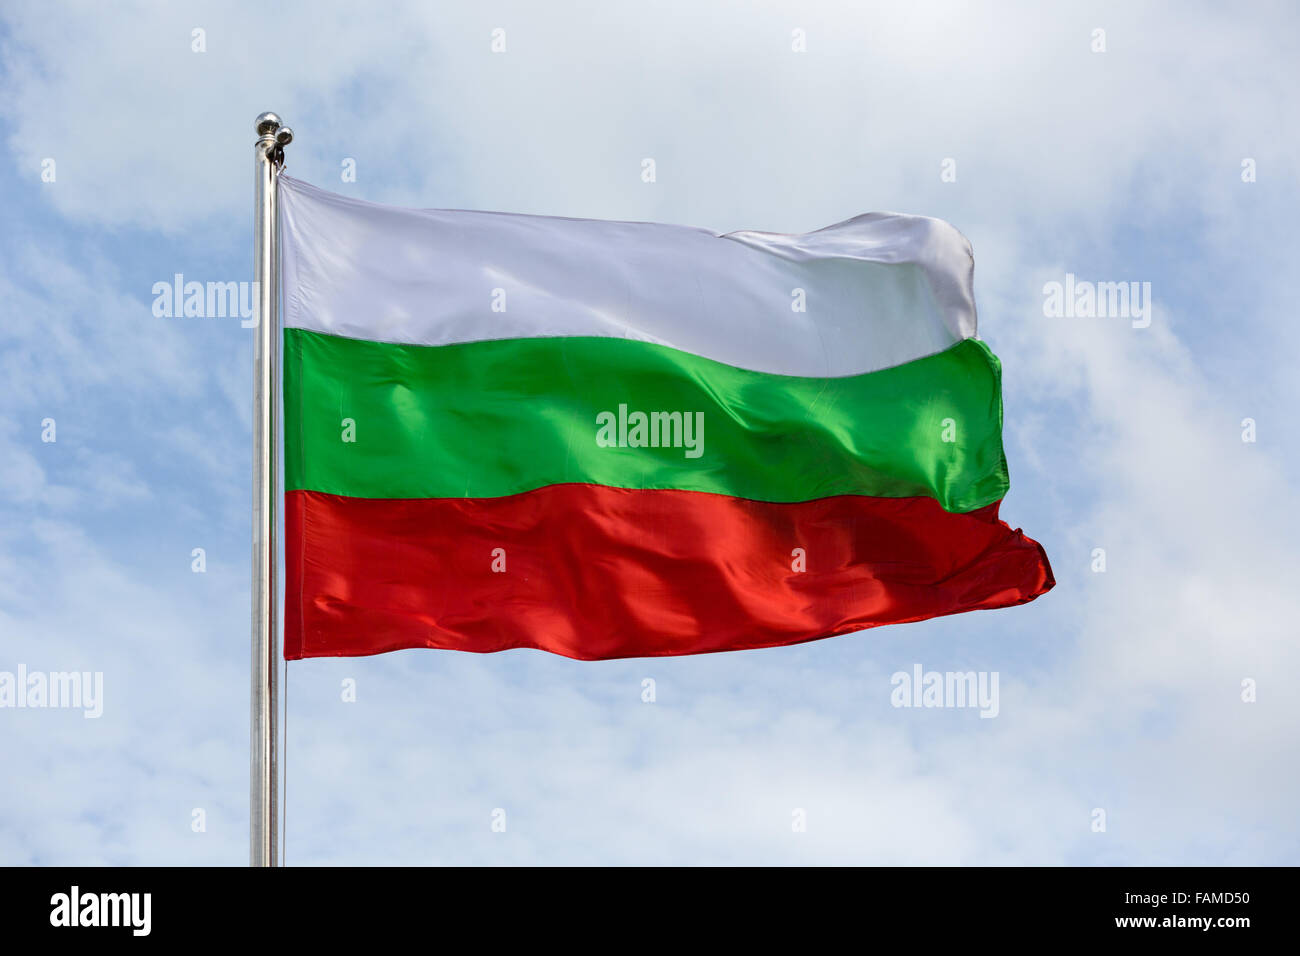 Bulgarian flag blowing in wind - Stock Image